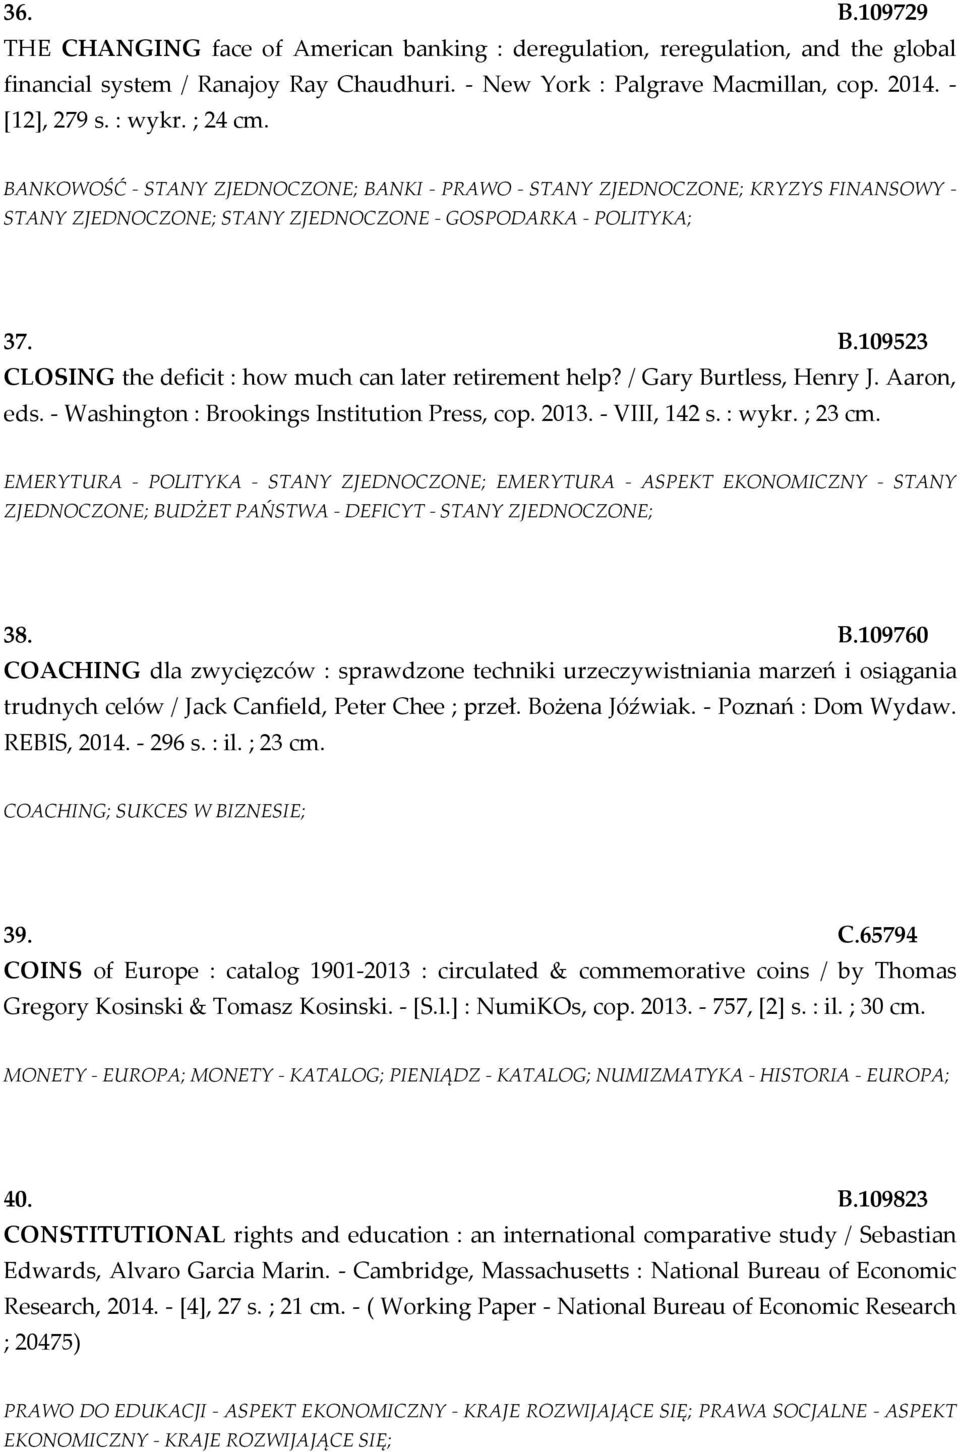 / Gary Burtless, Henry J. Aaron, eds. - Washington : Brookings Institution Press, cop. 2013. - VIII, 142 s. : wykr. ; 23 cm.